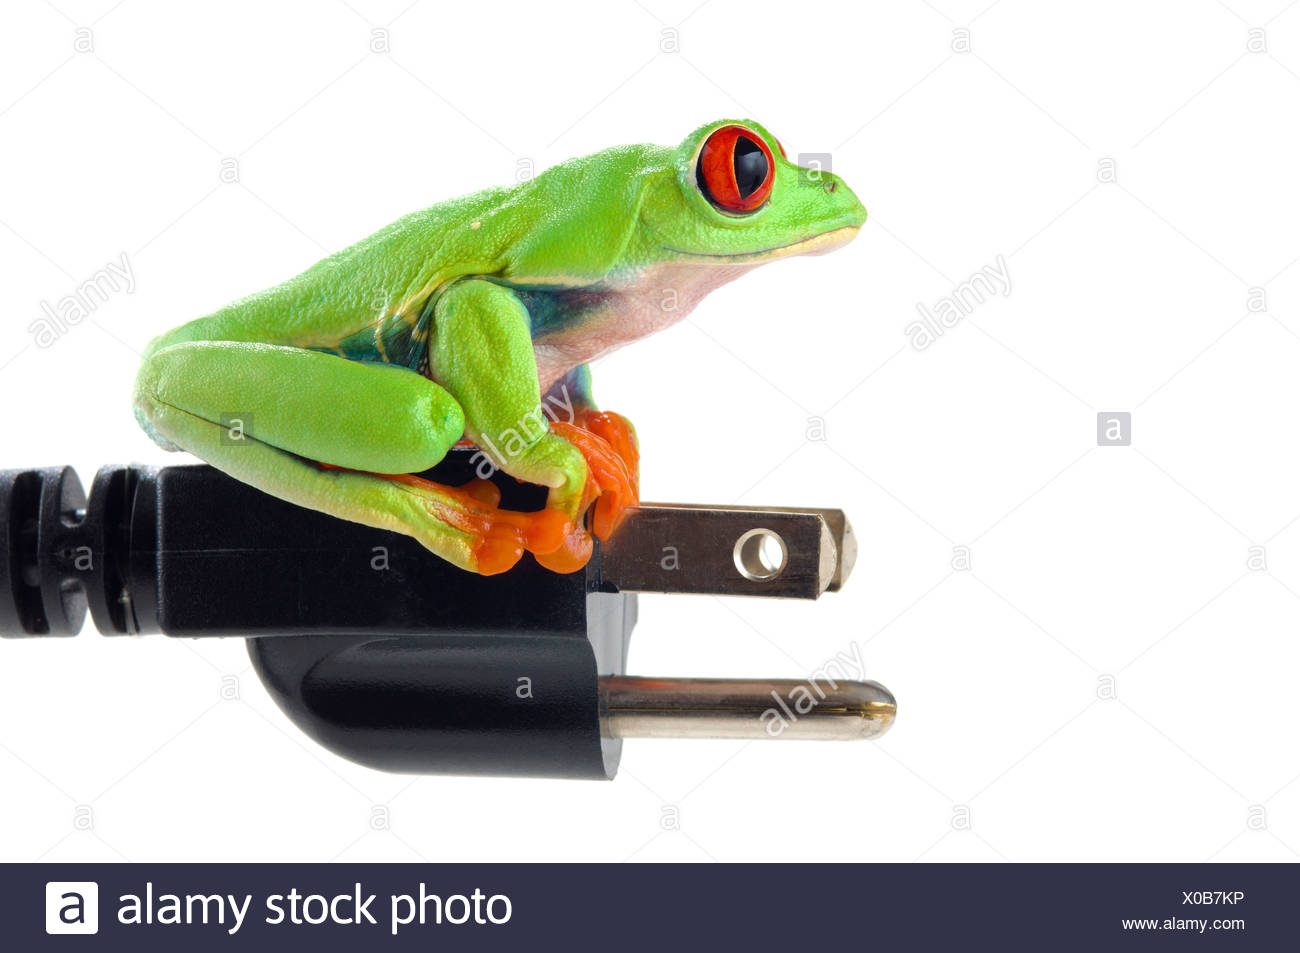 Red-eyed tree frog on electrical plug Stock Photo